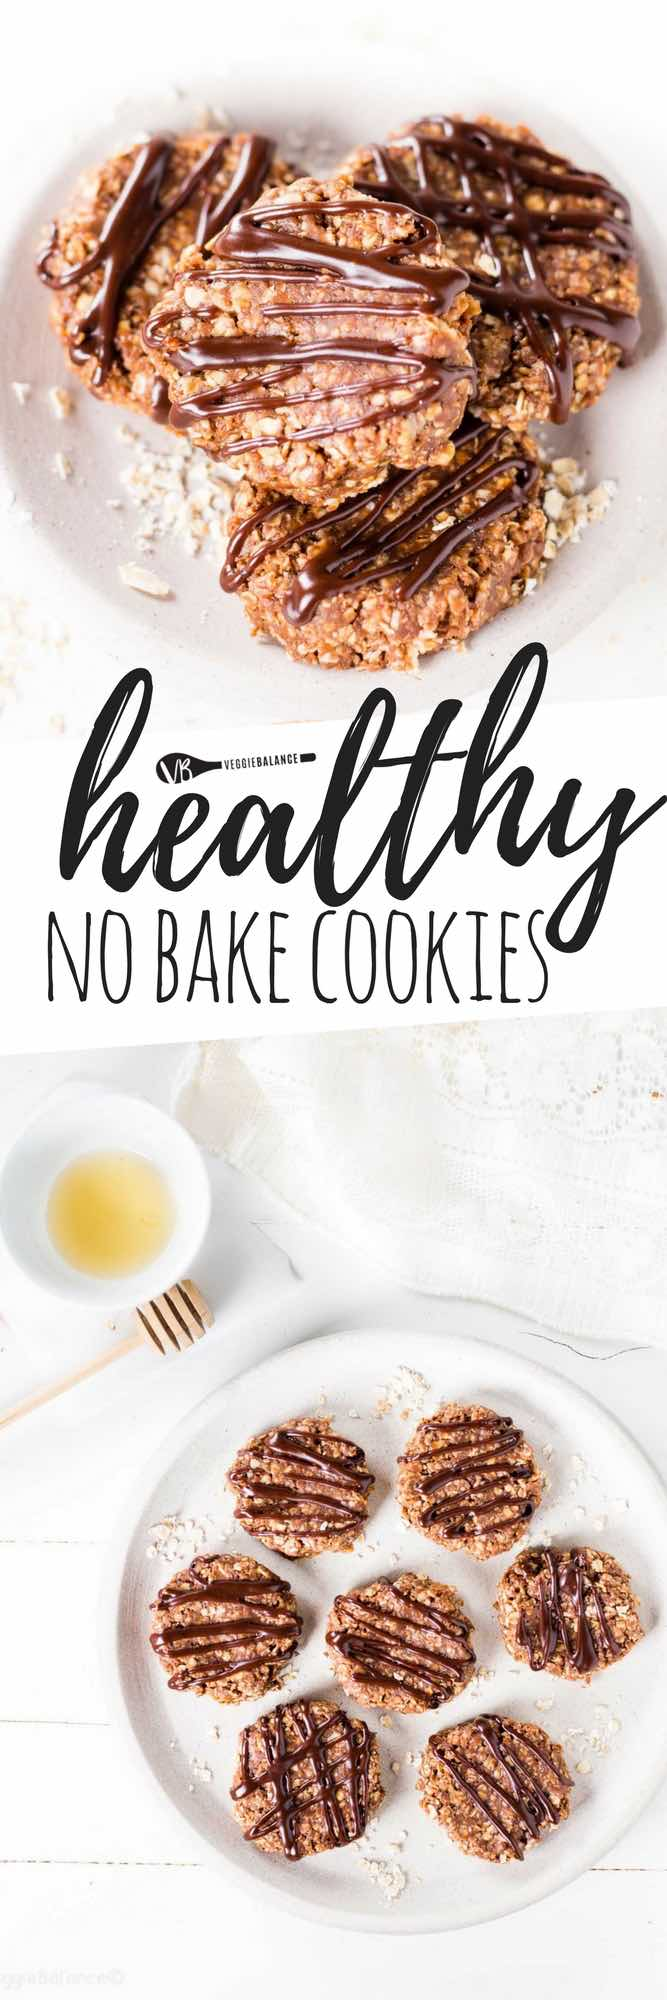 These Healthy No Bake Cookies are made with a few simple ingredients and are insanely easy to make. These Gluten-Free Cookies are packed with peanut butter and laced with chocolate flavor. Made in under 30 minutes. (Gluten-Free, Dairy-Free, Low-Sugar, Vegetarian)